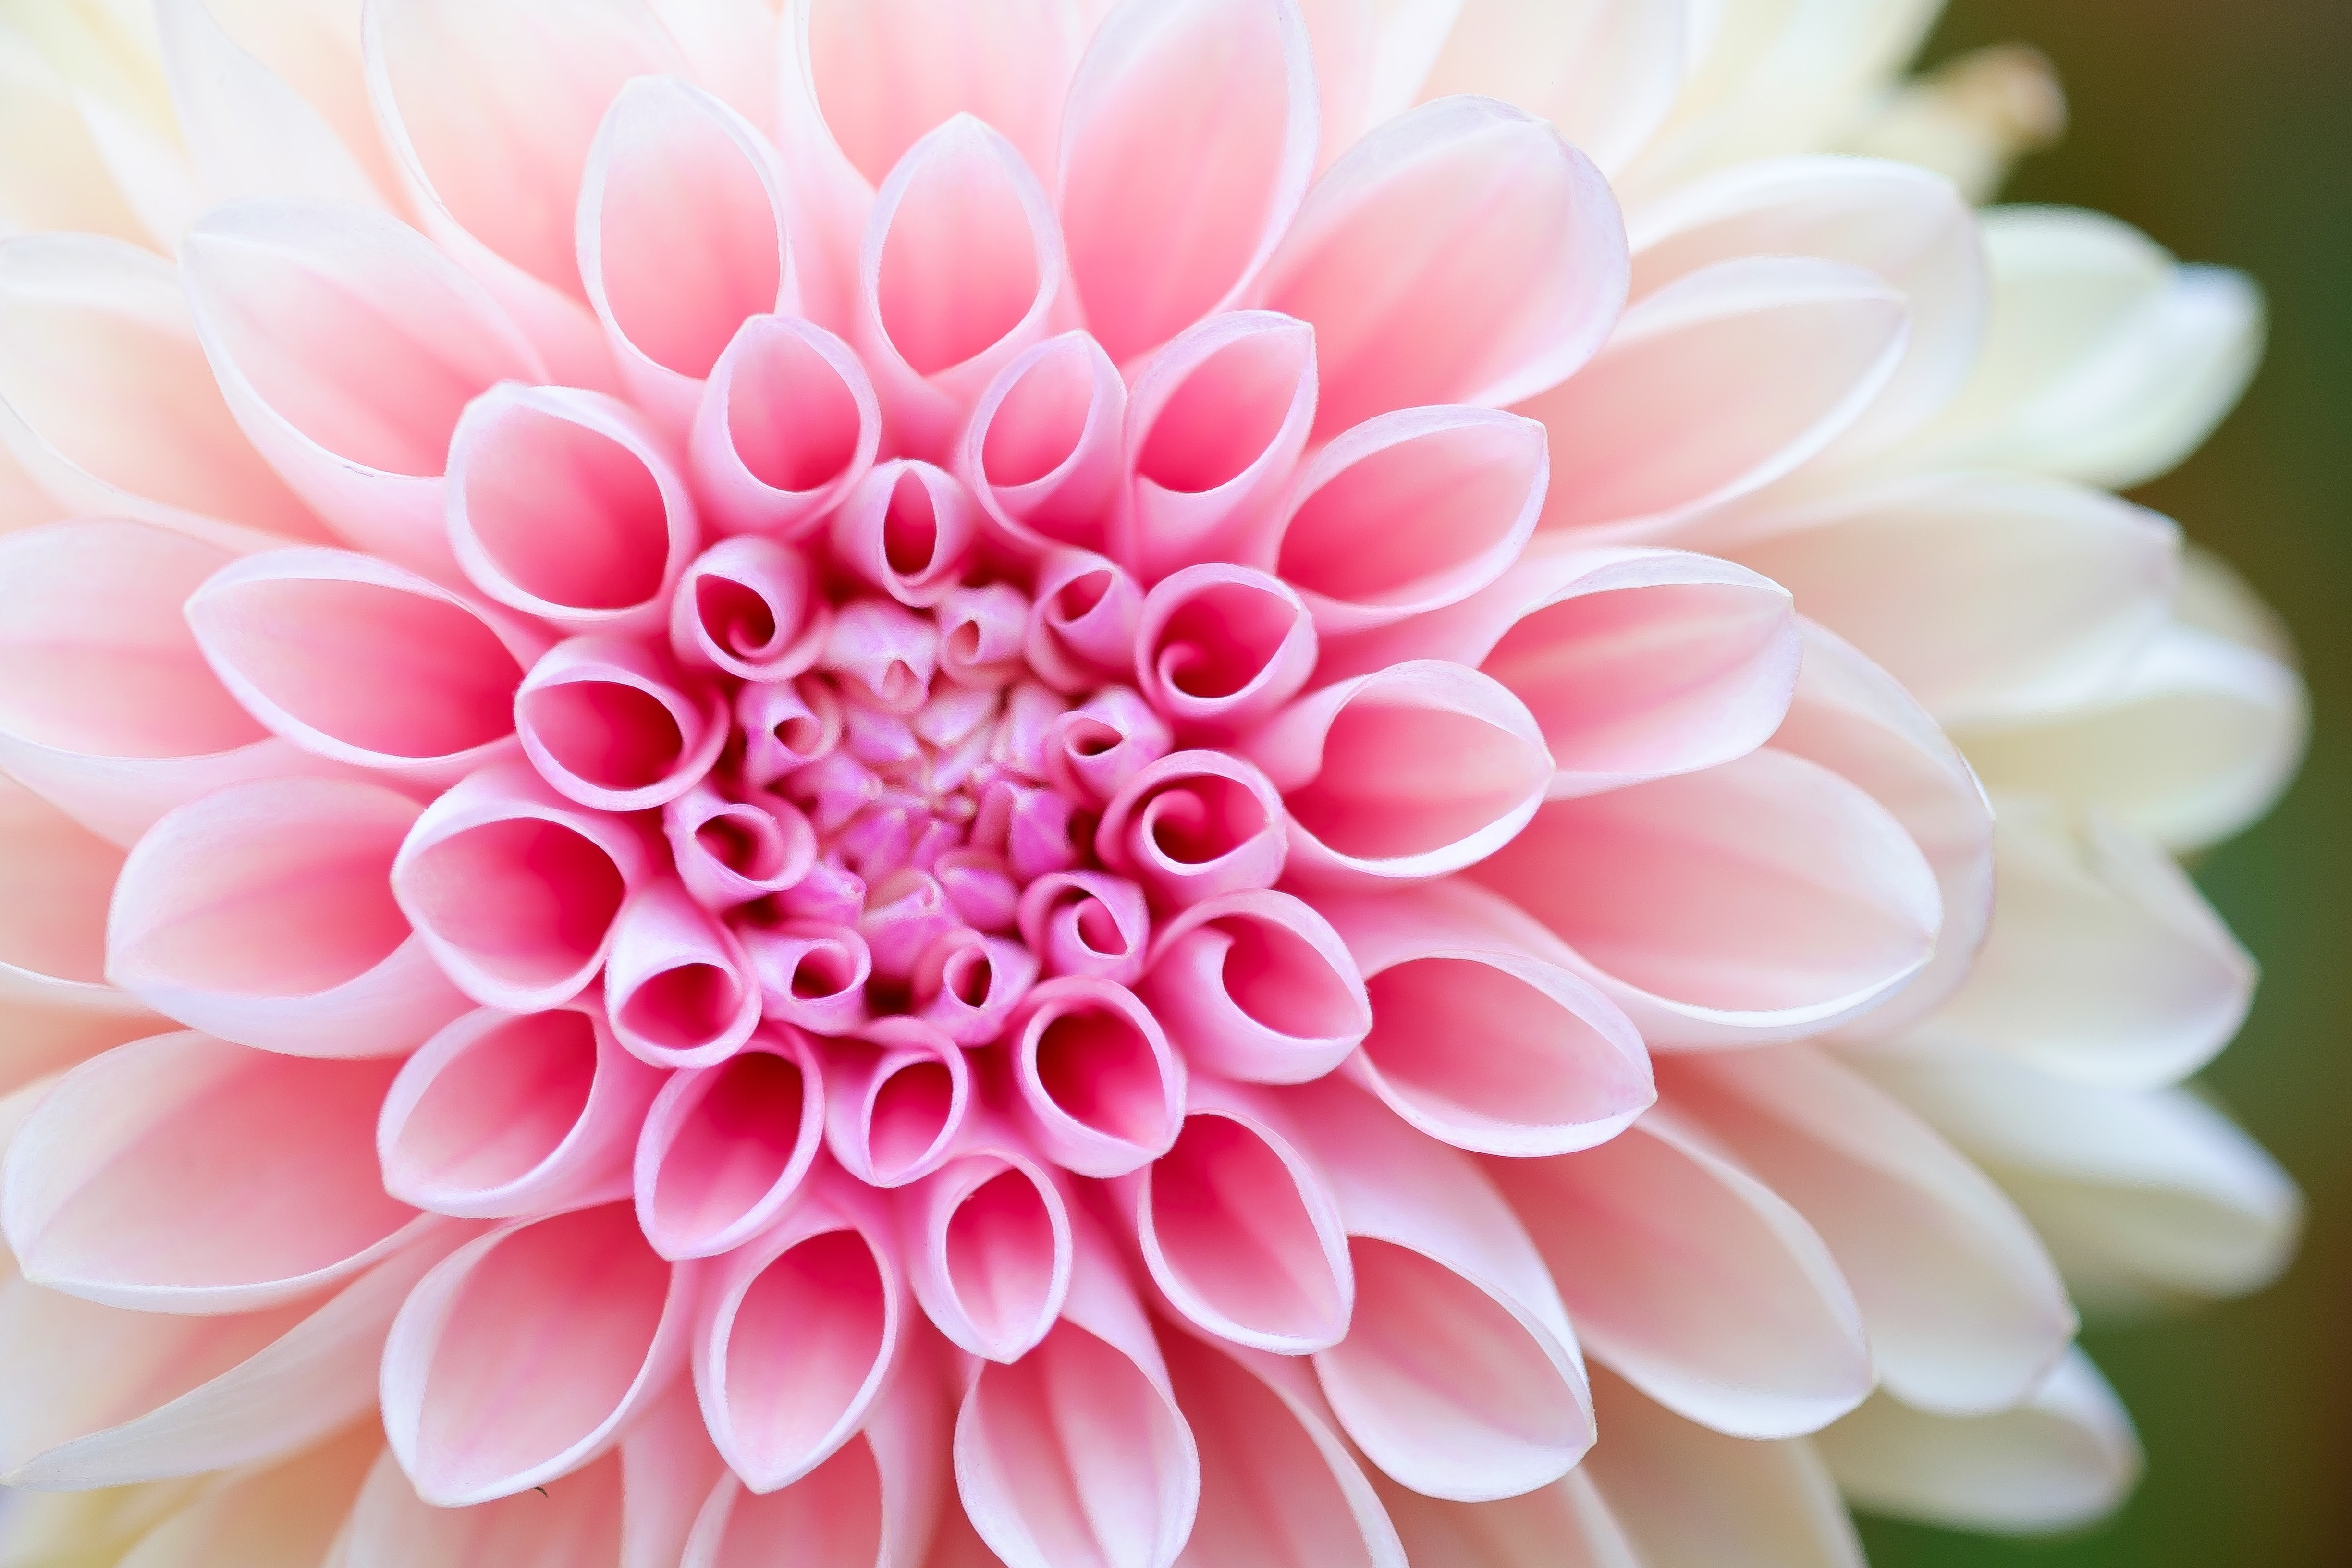 close-up photography of pink petaled flower